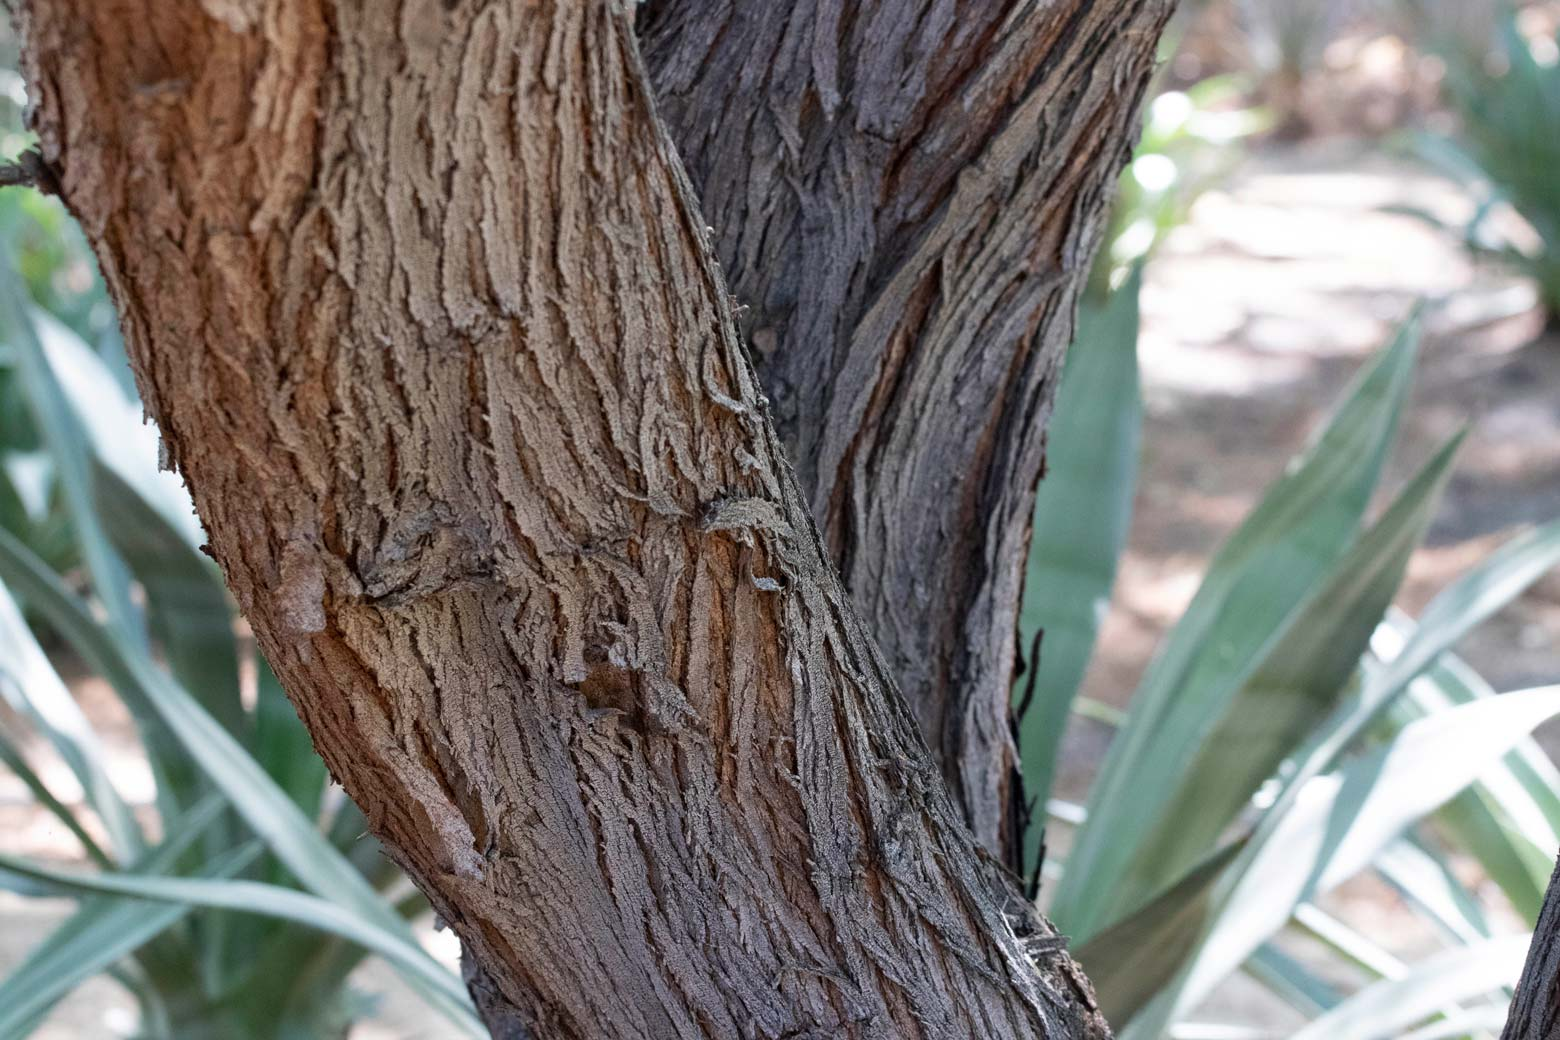 A close-up of the bark of a Mesquite tree.